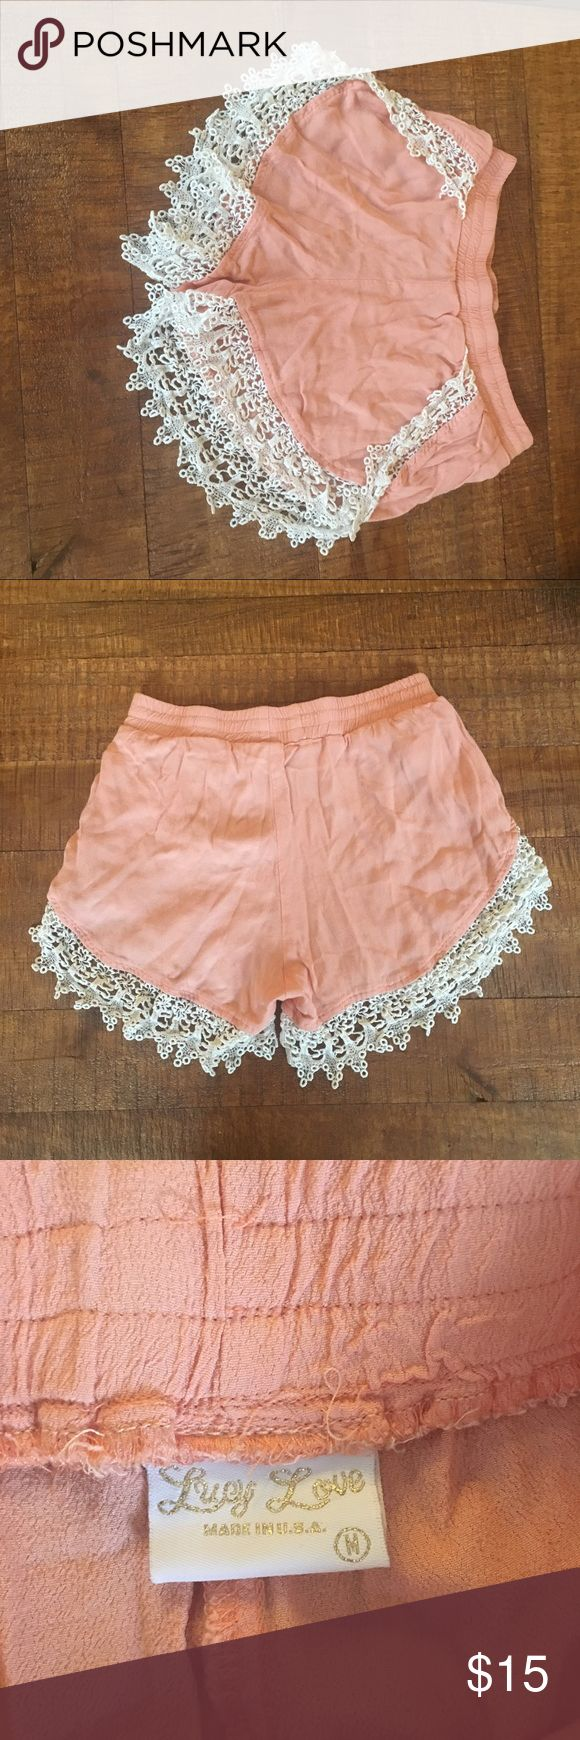 Peach shorts with crochet trim Peach shorts with crochet trim, says size medium but fits like a small Shorts